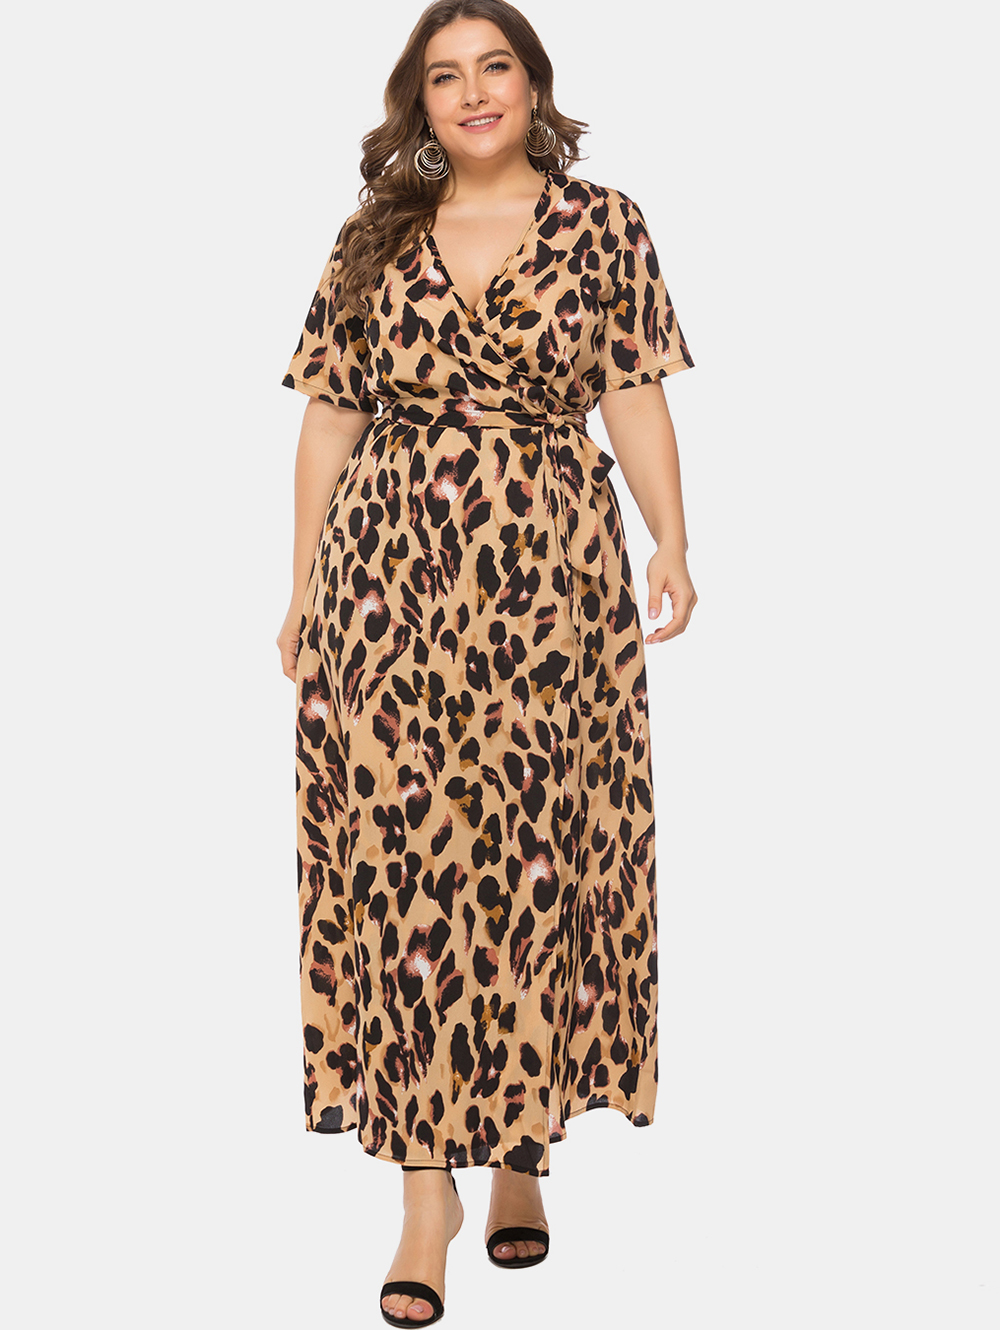 US $14.38 50% OFF|Wipalo Women Plus Size 6XL Leopard Print Wrap Maxi Dress  V Neck Short Sleeves Ankle Length Casual Dress 2019 Summer Vestidos-in ...